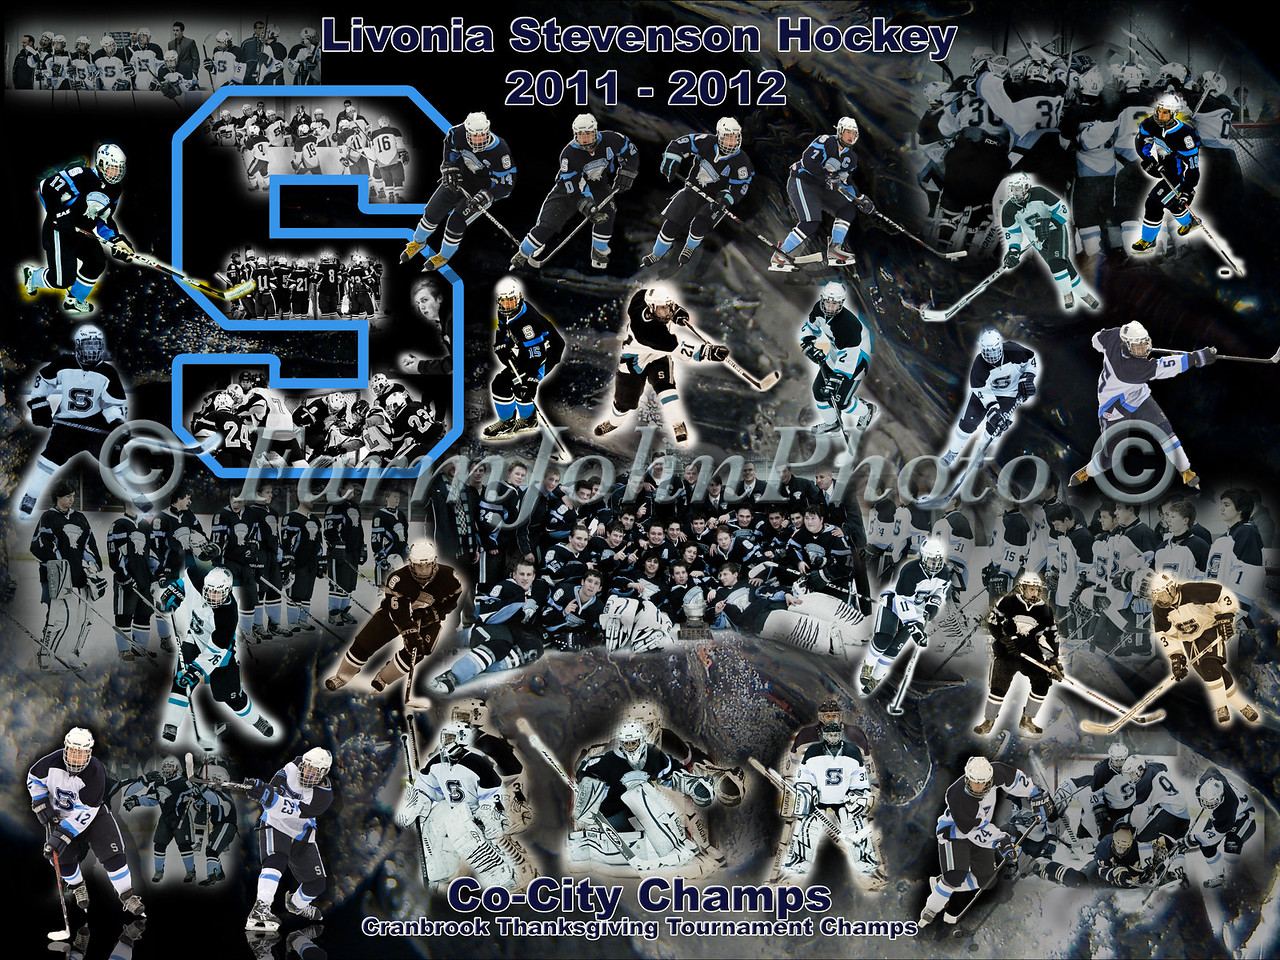 LSHS Team Collage 24 x 18 Format Proof 8